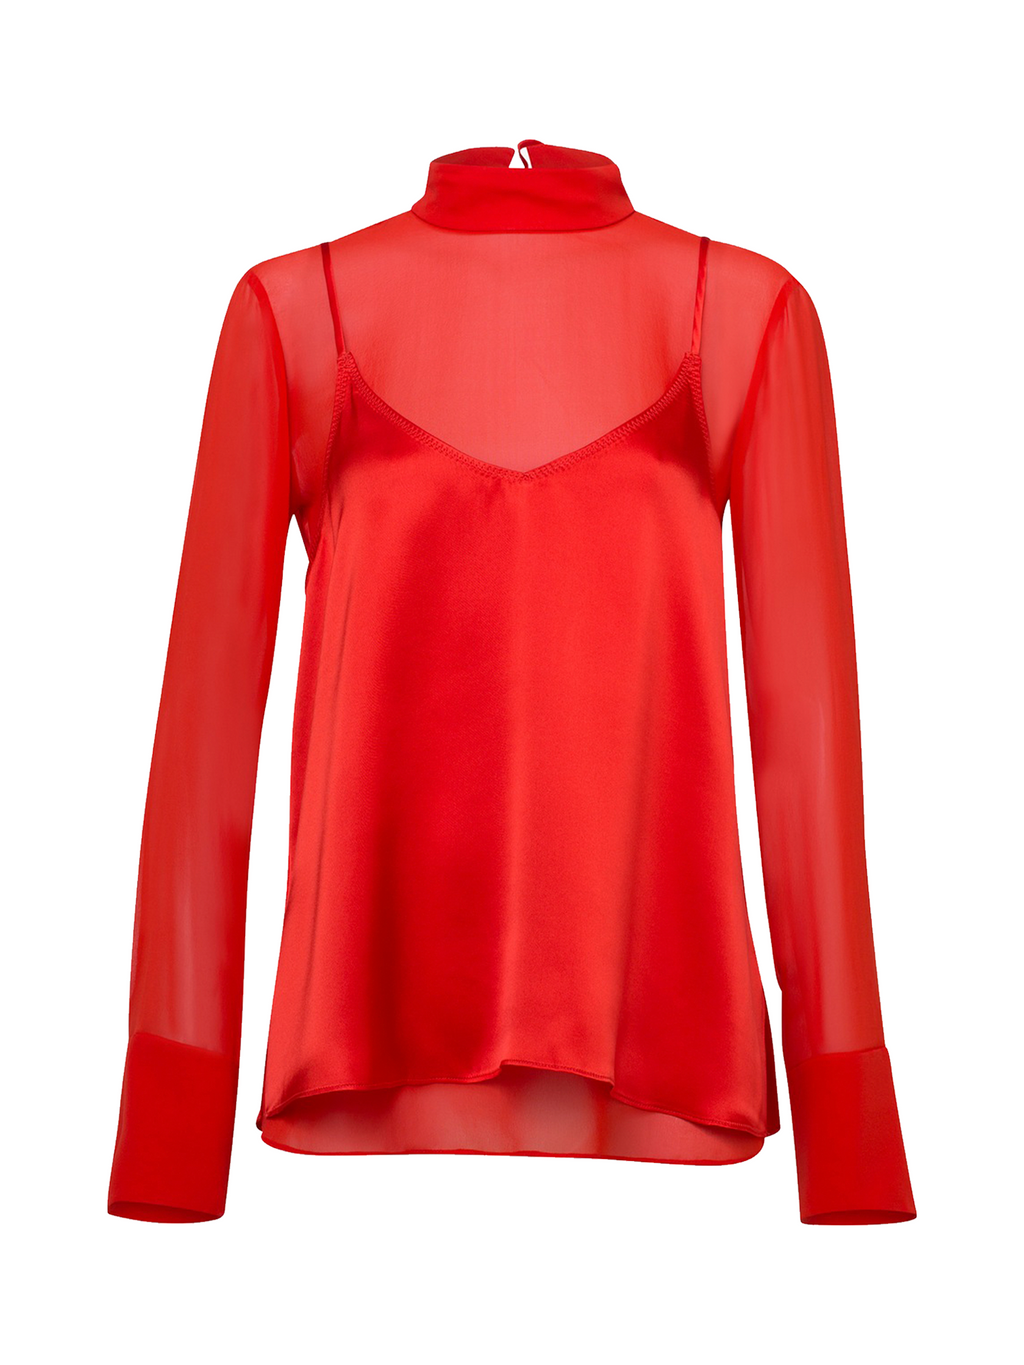 Dorothee Schumacher Transparent Shine Blouse